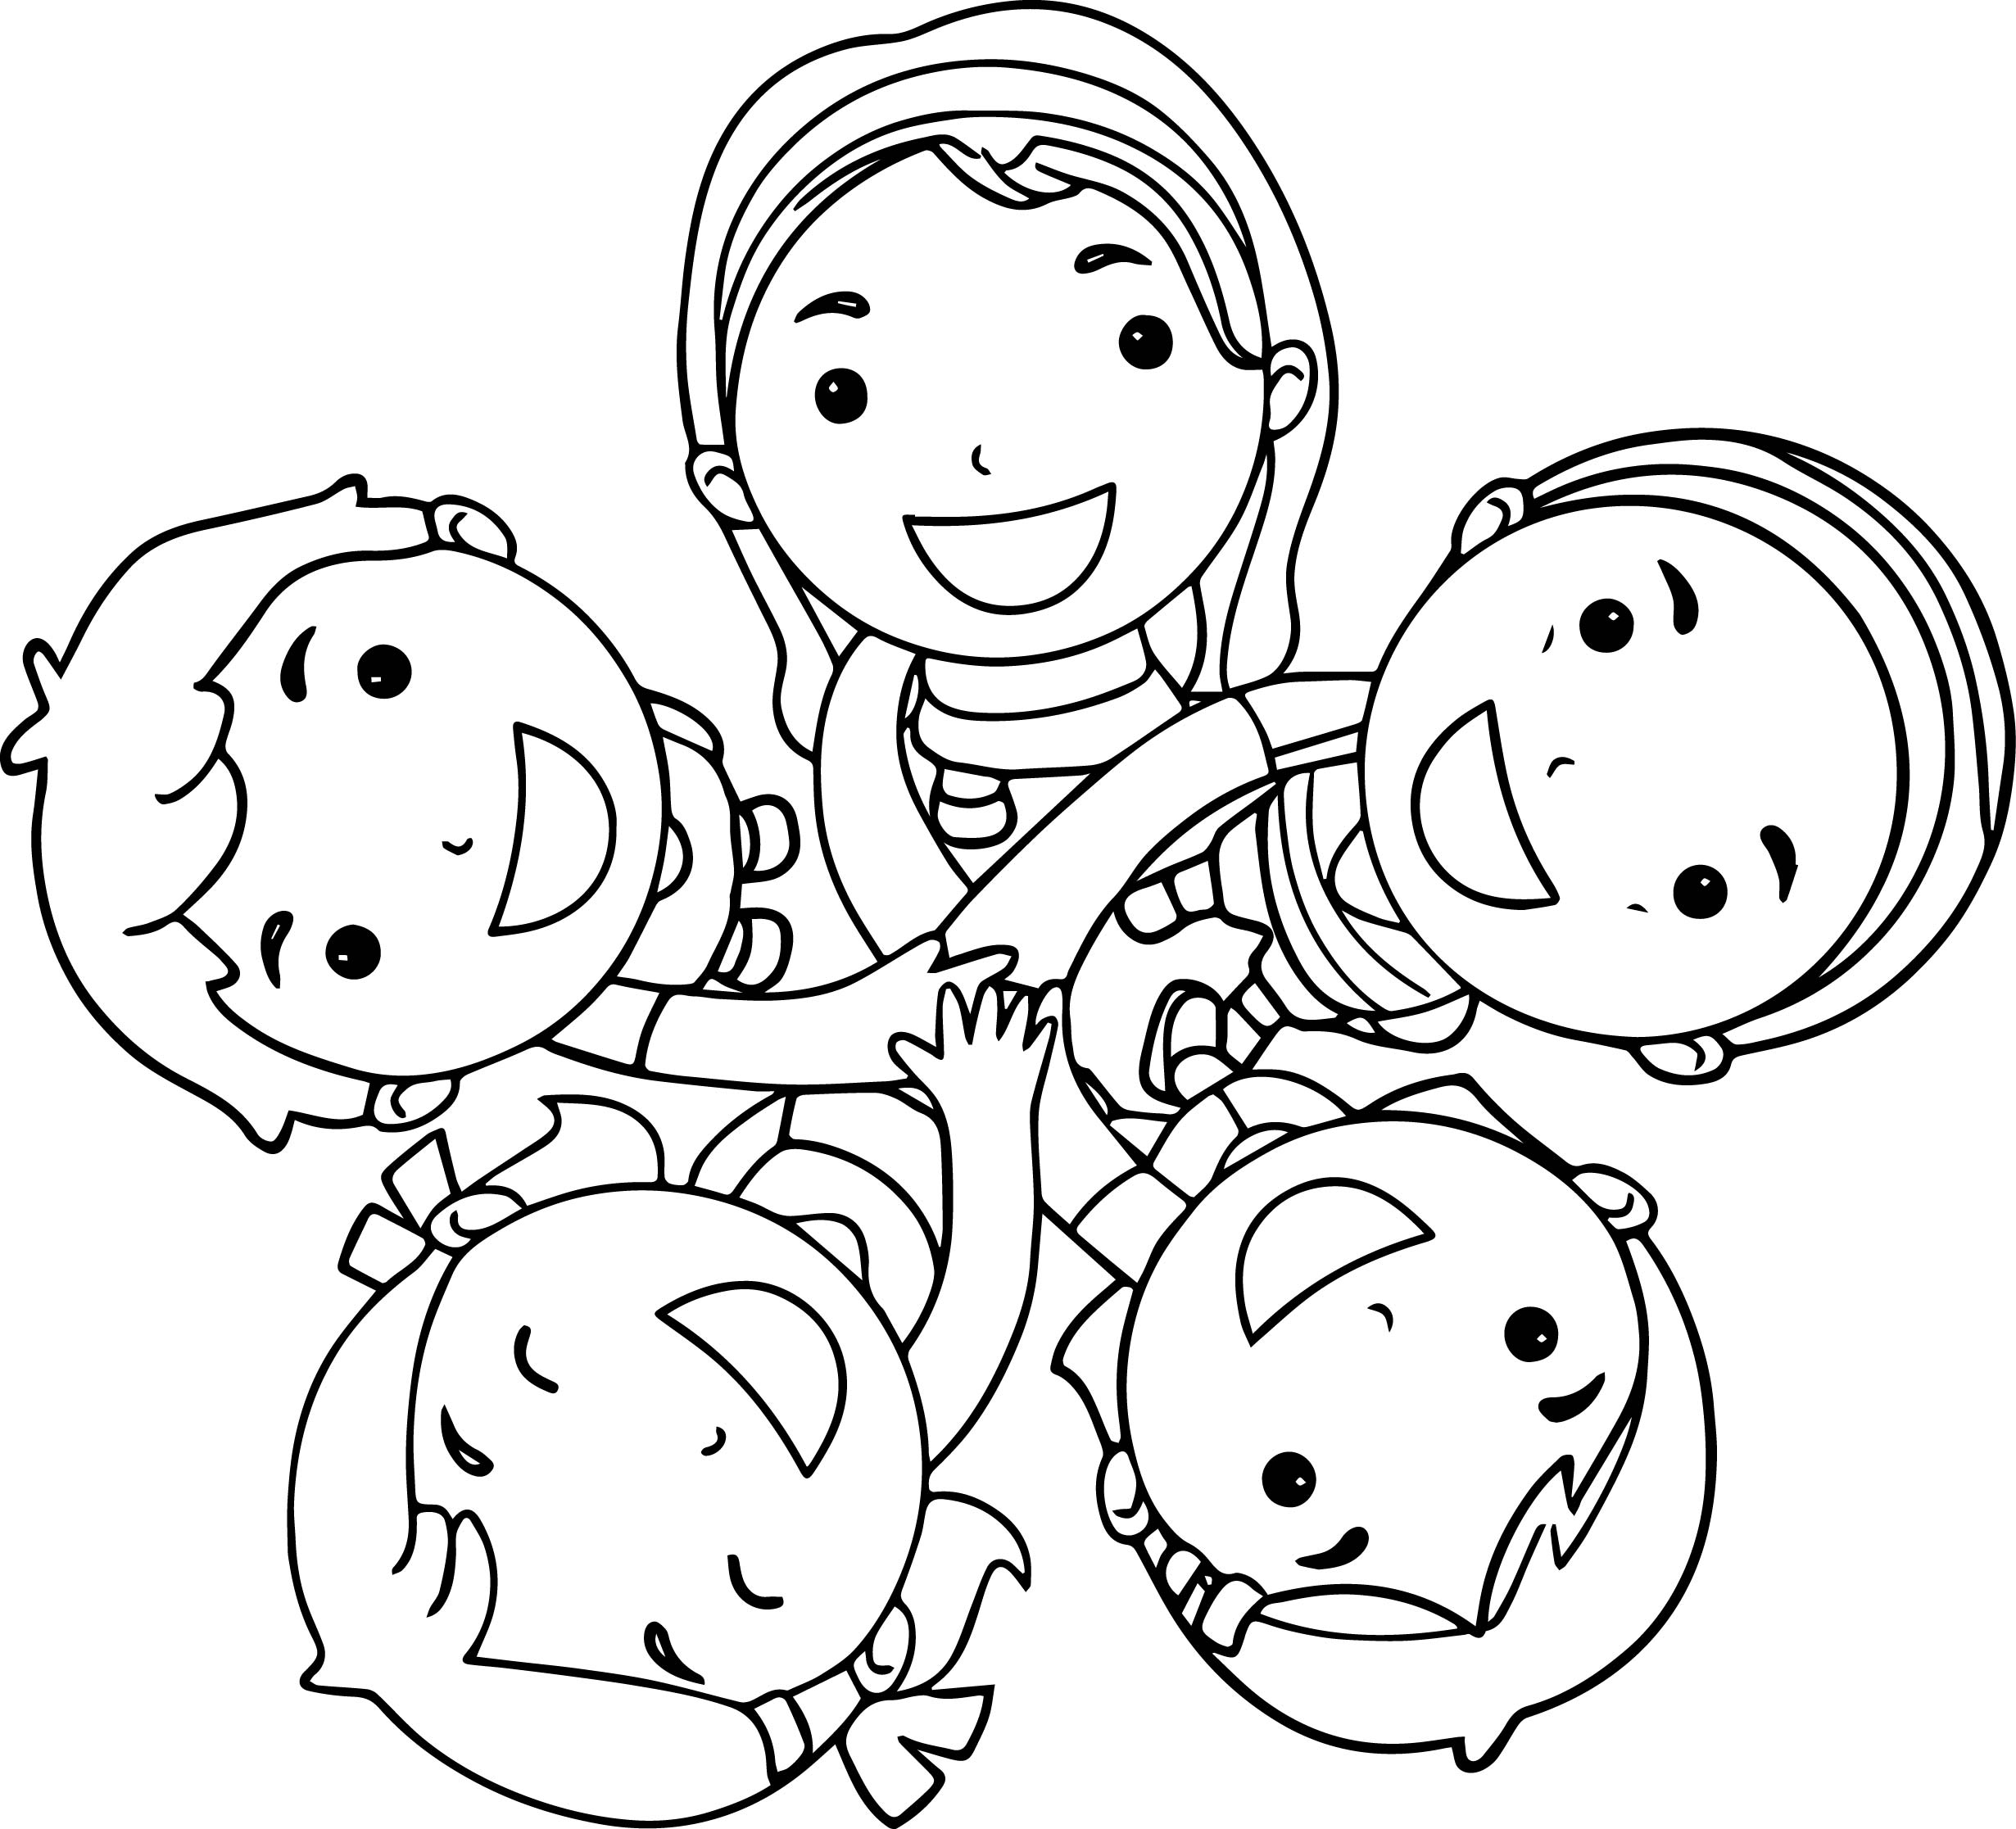 Five Best Friends Coloring Page